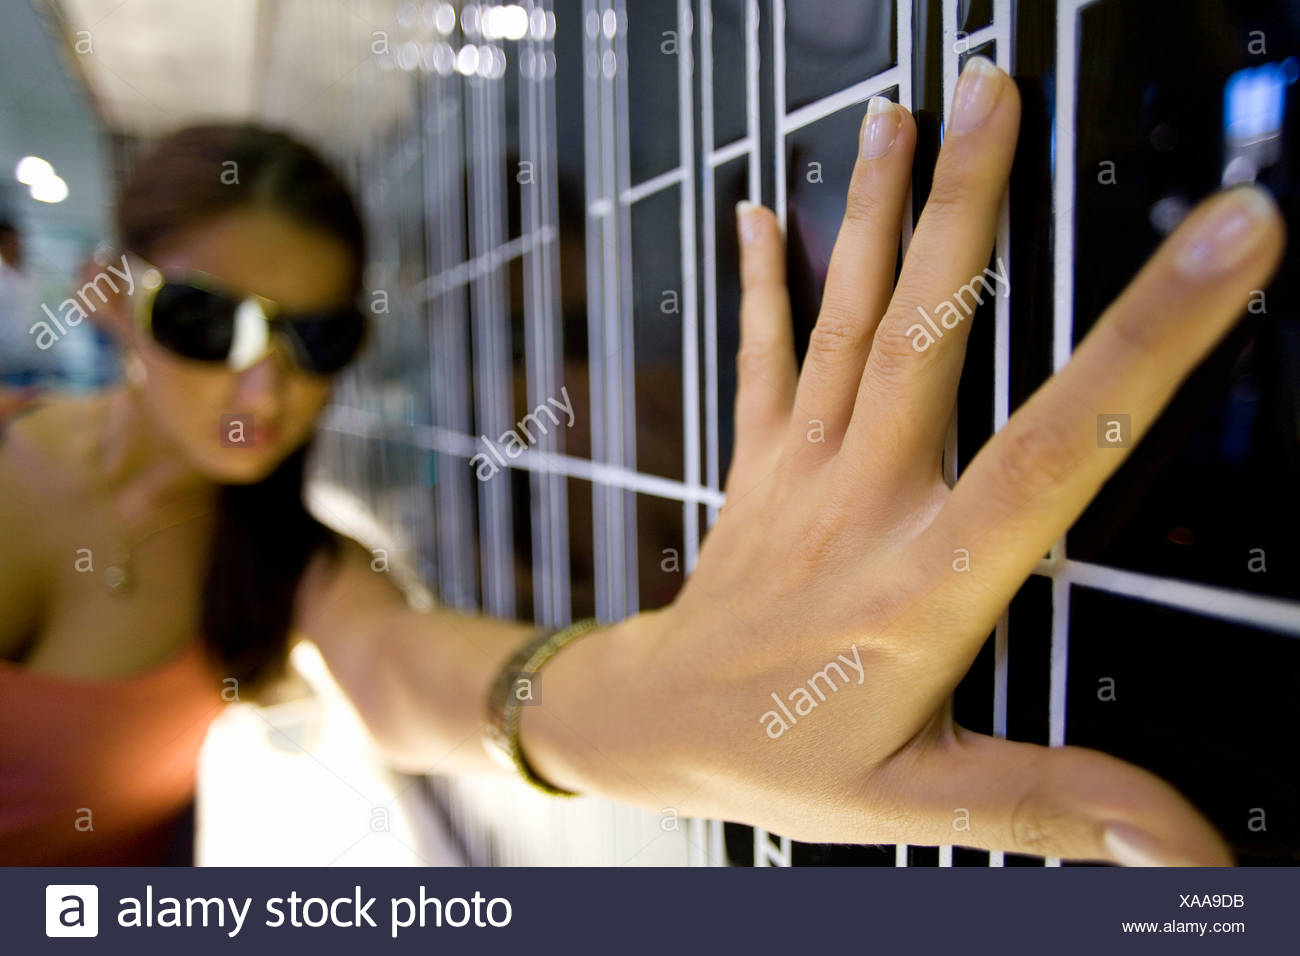 Young woman with hand on wall, wearing sunglasses - Stock Image